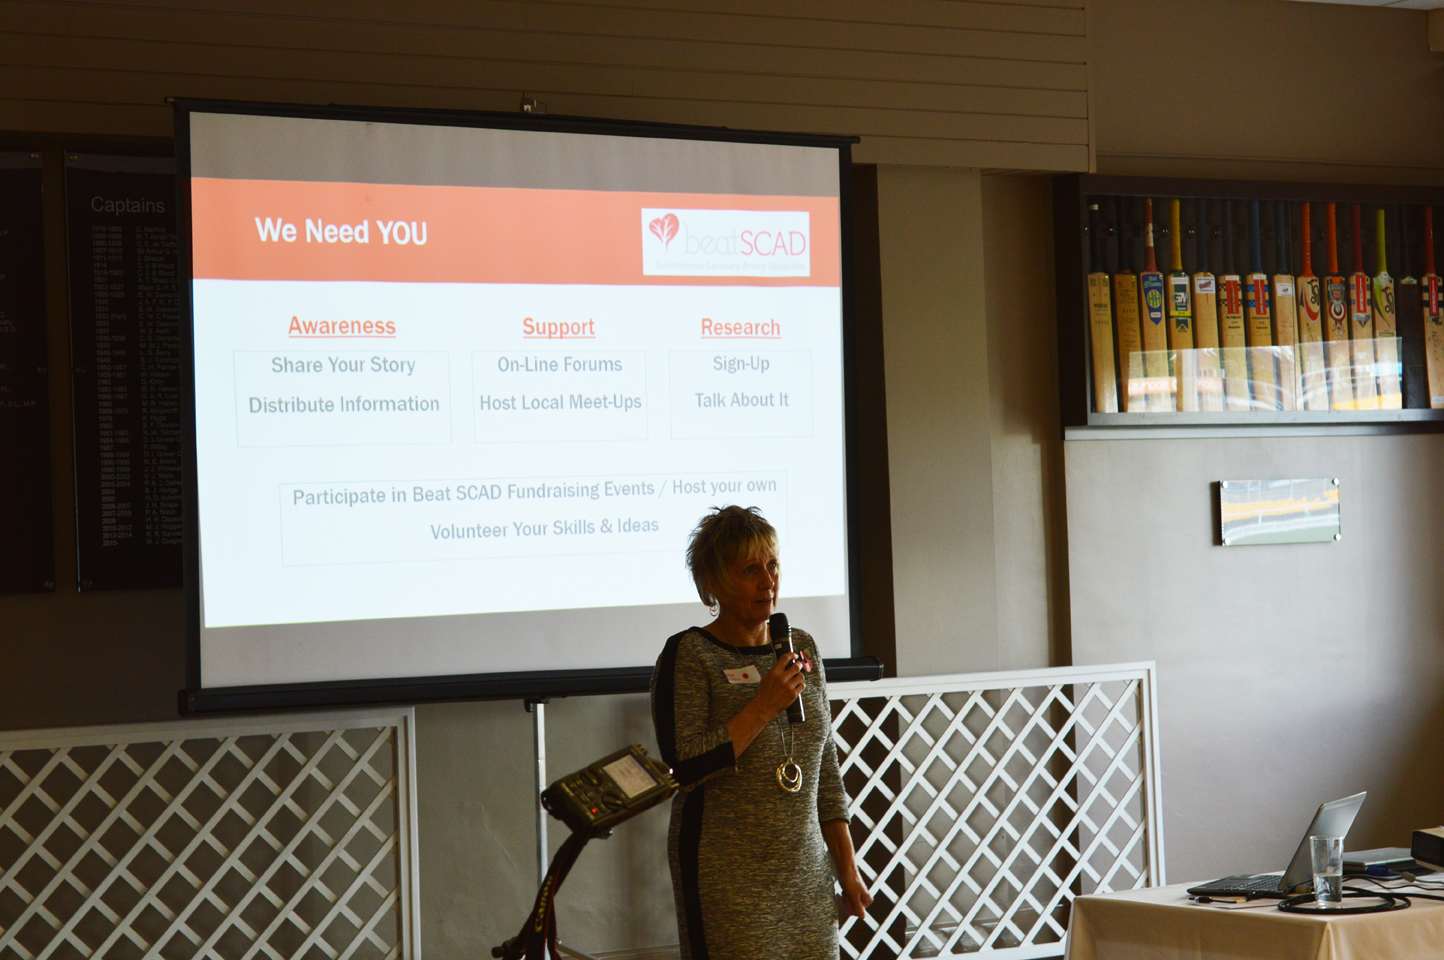 Karen Rockell explains how patients, family and friends can help achieve Beat SCAD's aims